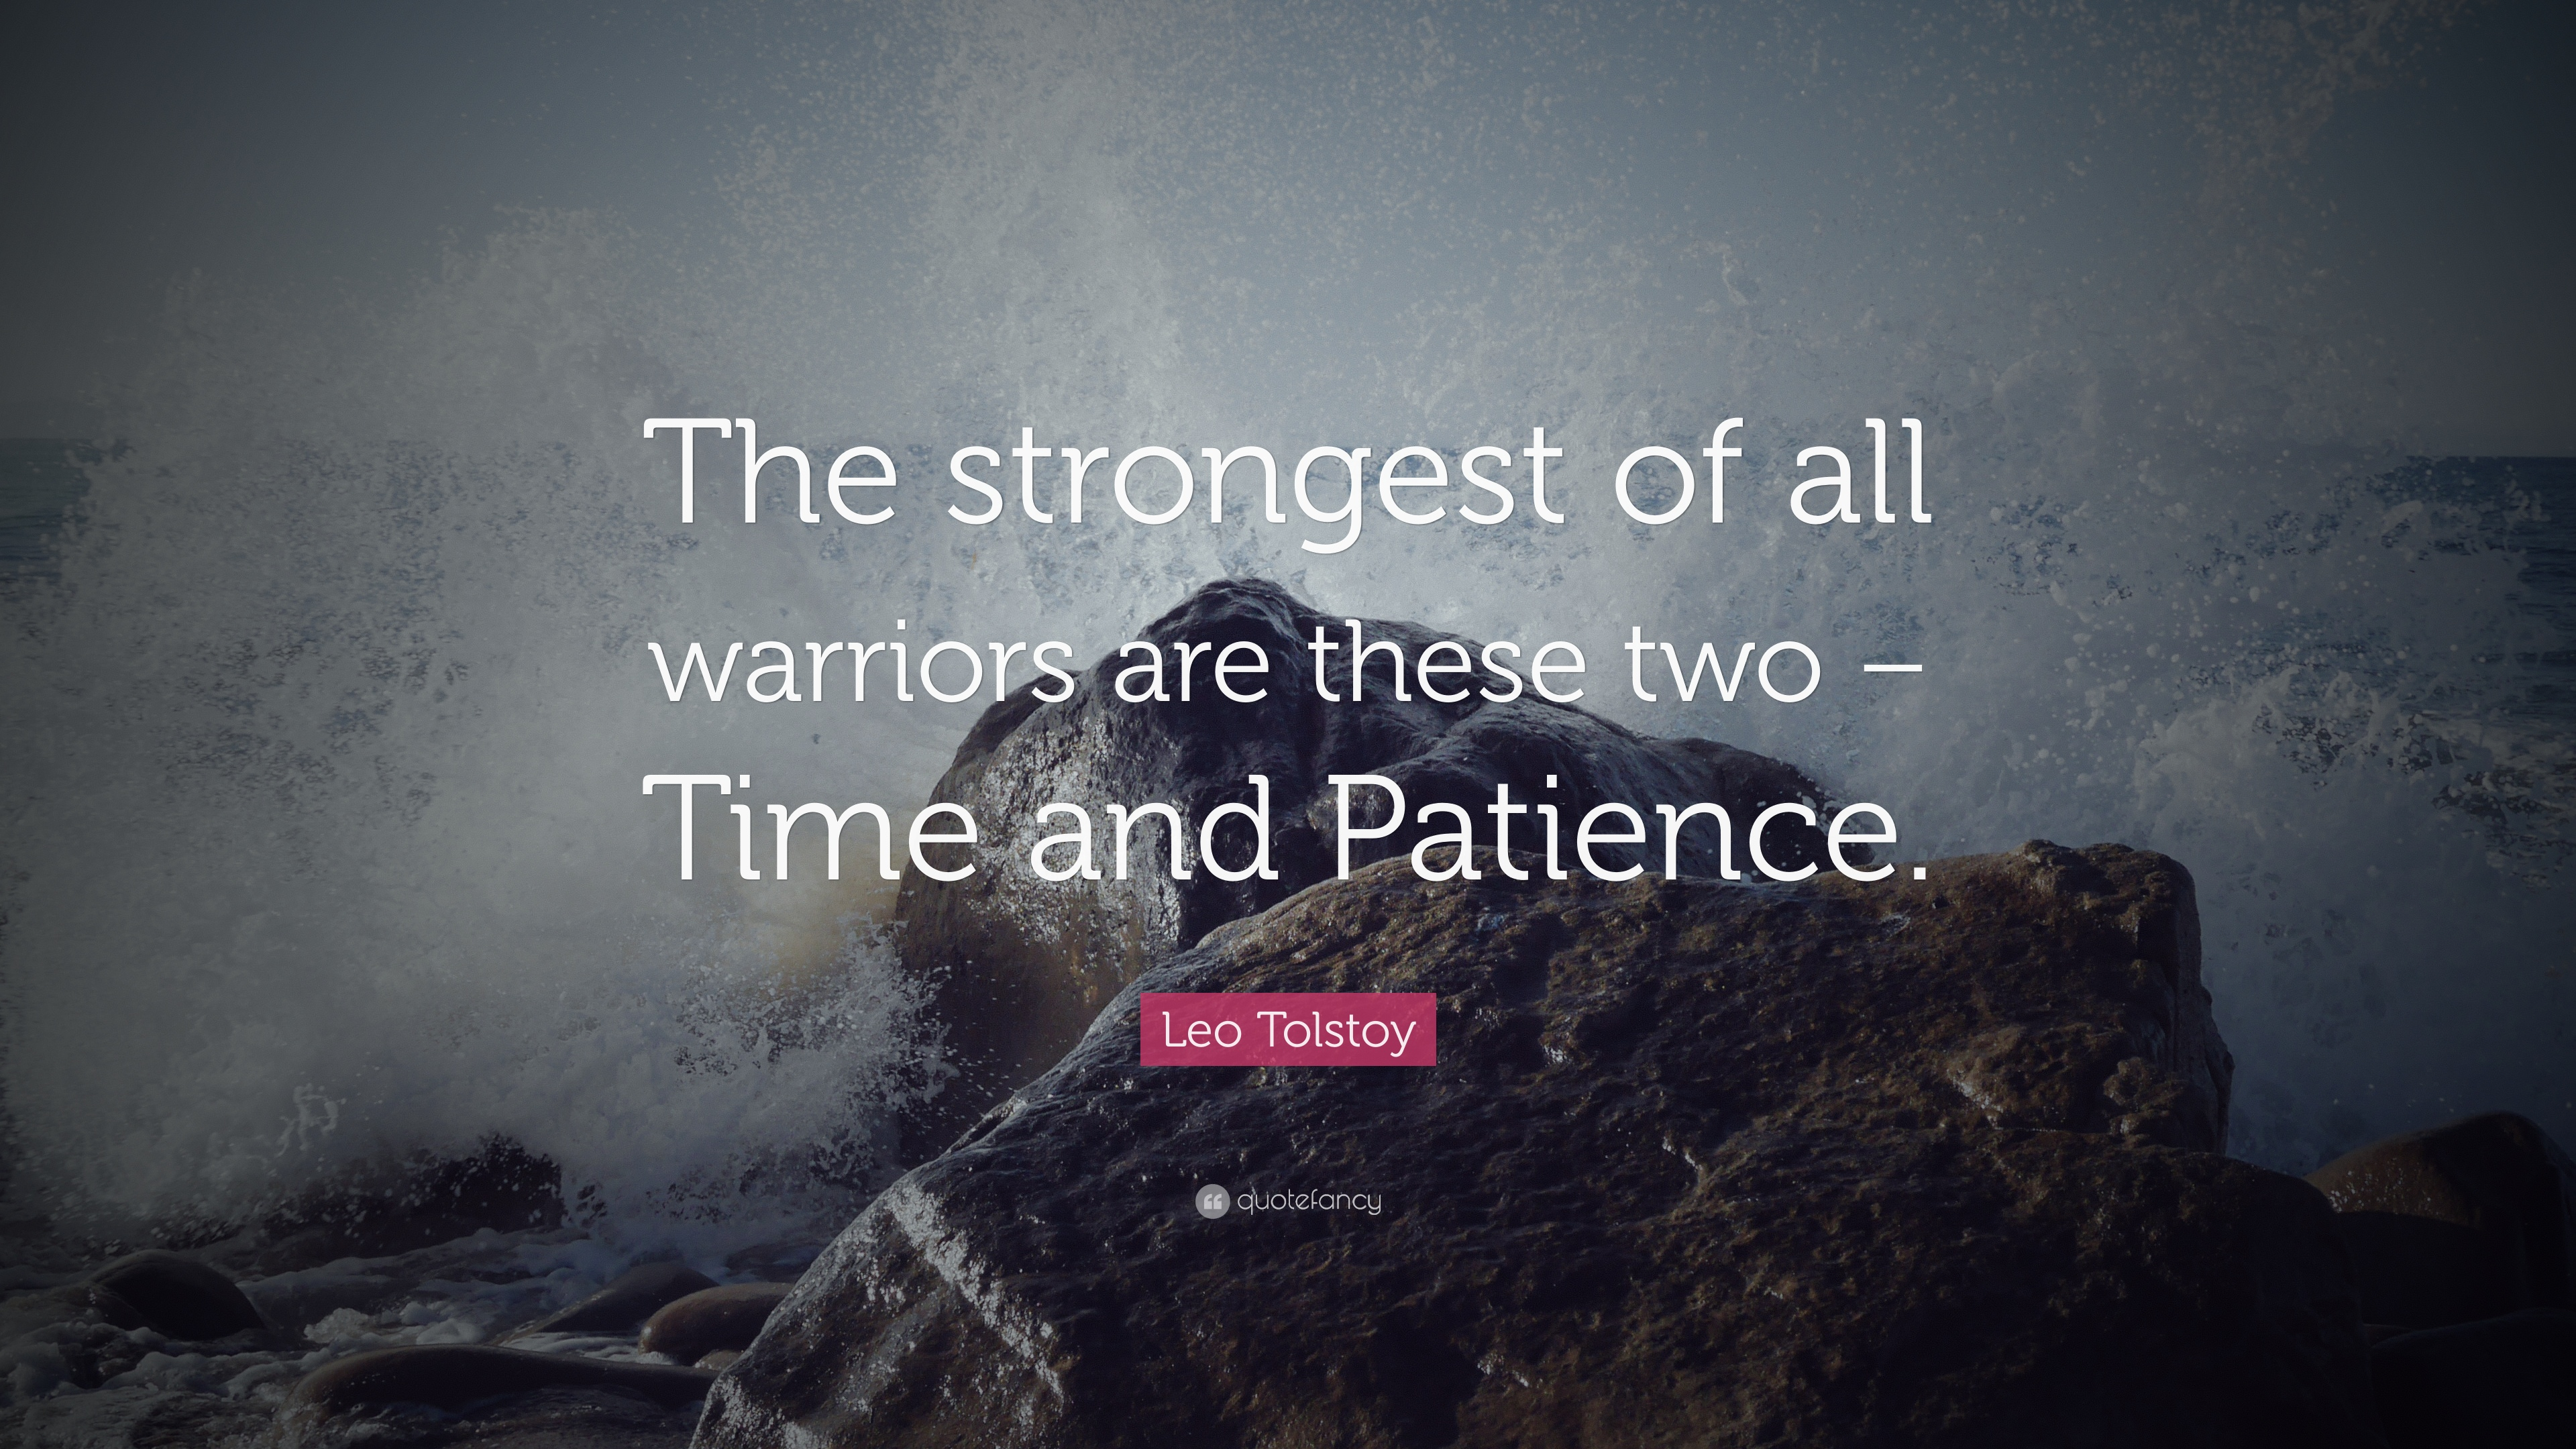 """Leo Tolstoy Quotes 100 Wallpapers: Leo Tolstoy Quote: """"The Strongest Of All Warriors Are"""